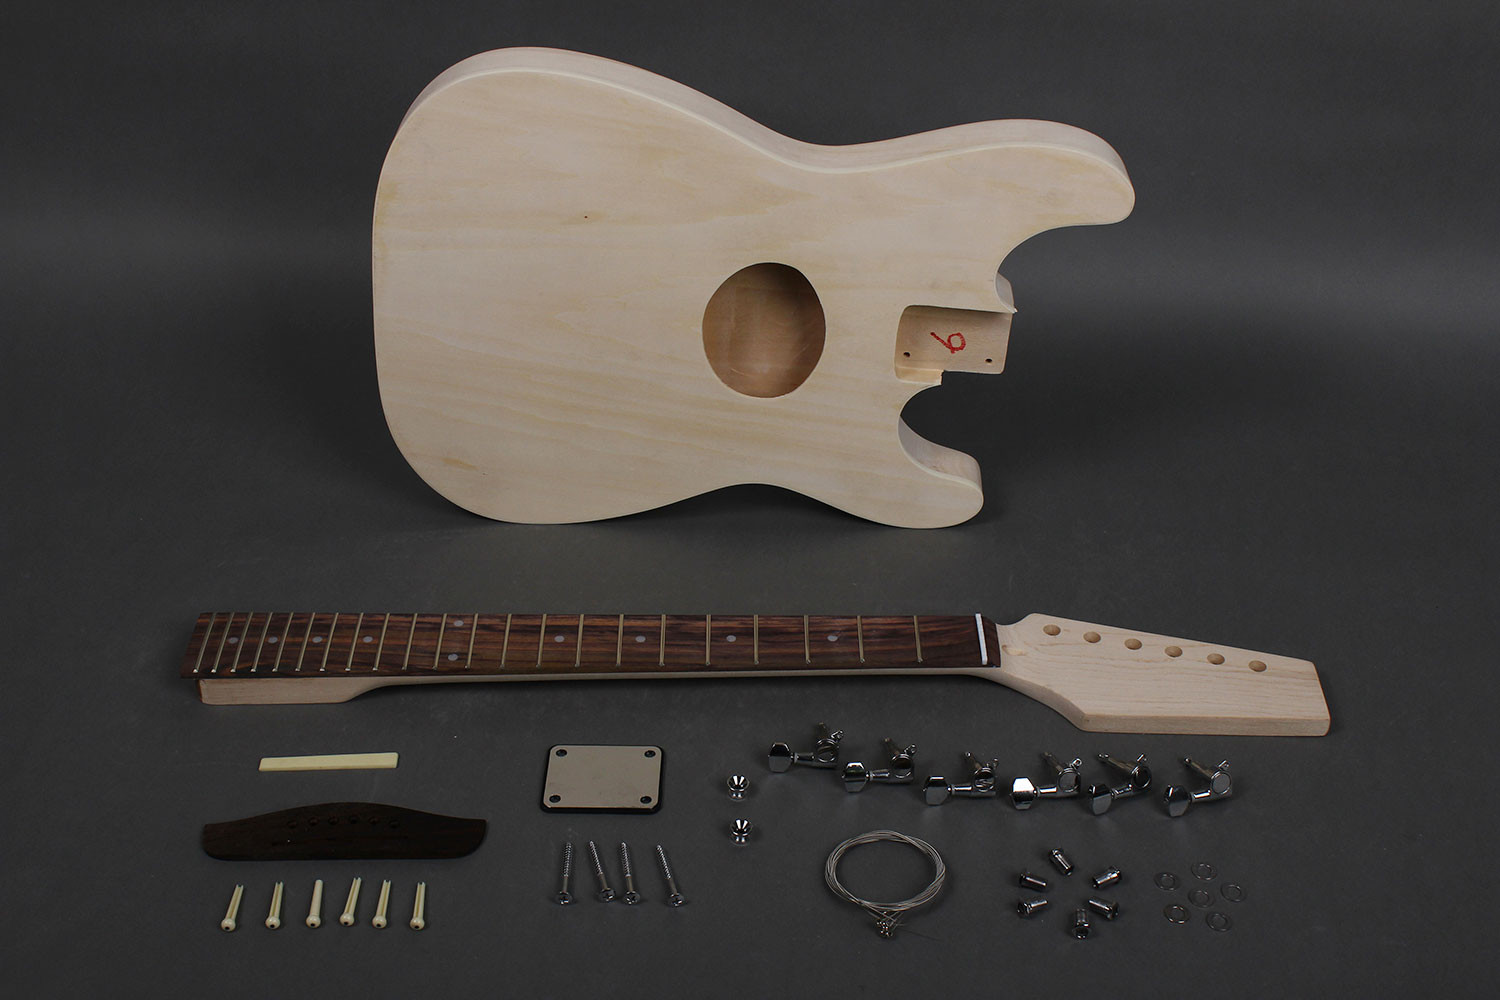 Best ideas about DIY Acoustic Guitar Kits . Save or Pin Special Acoustic Guitar DIY Kit Bolt on construction GK Now.